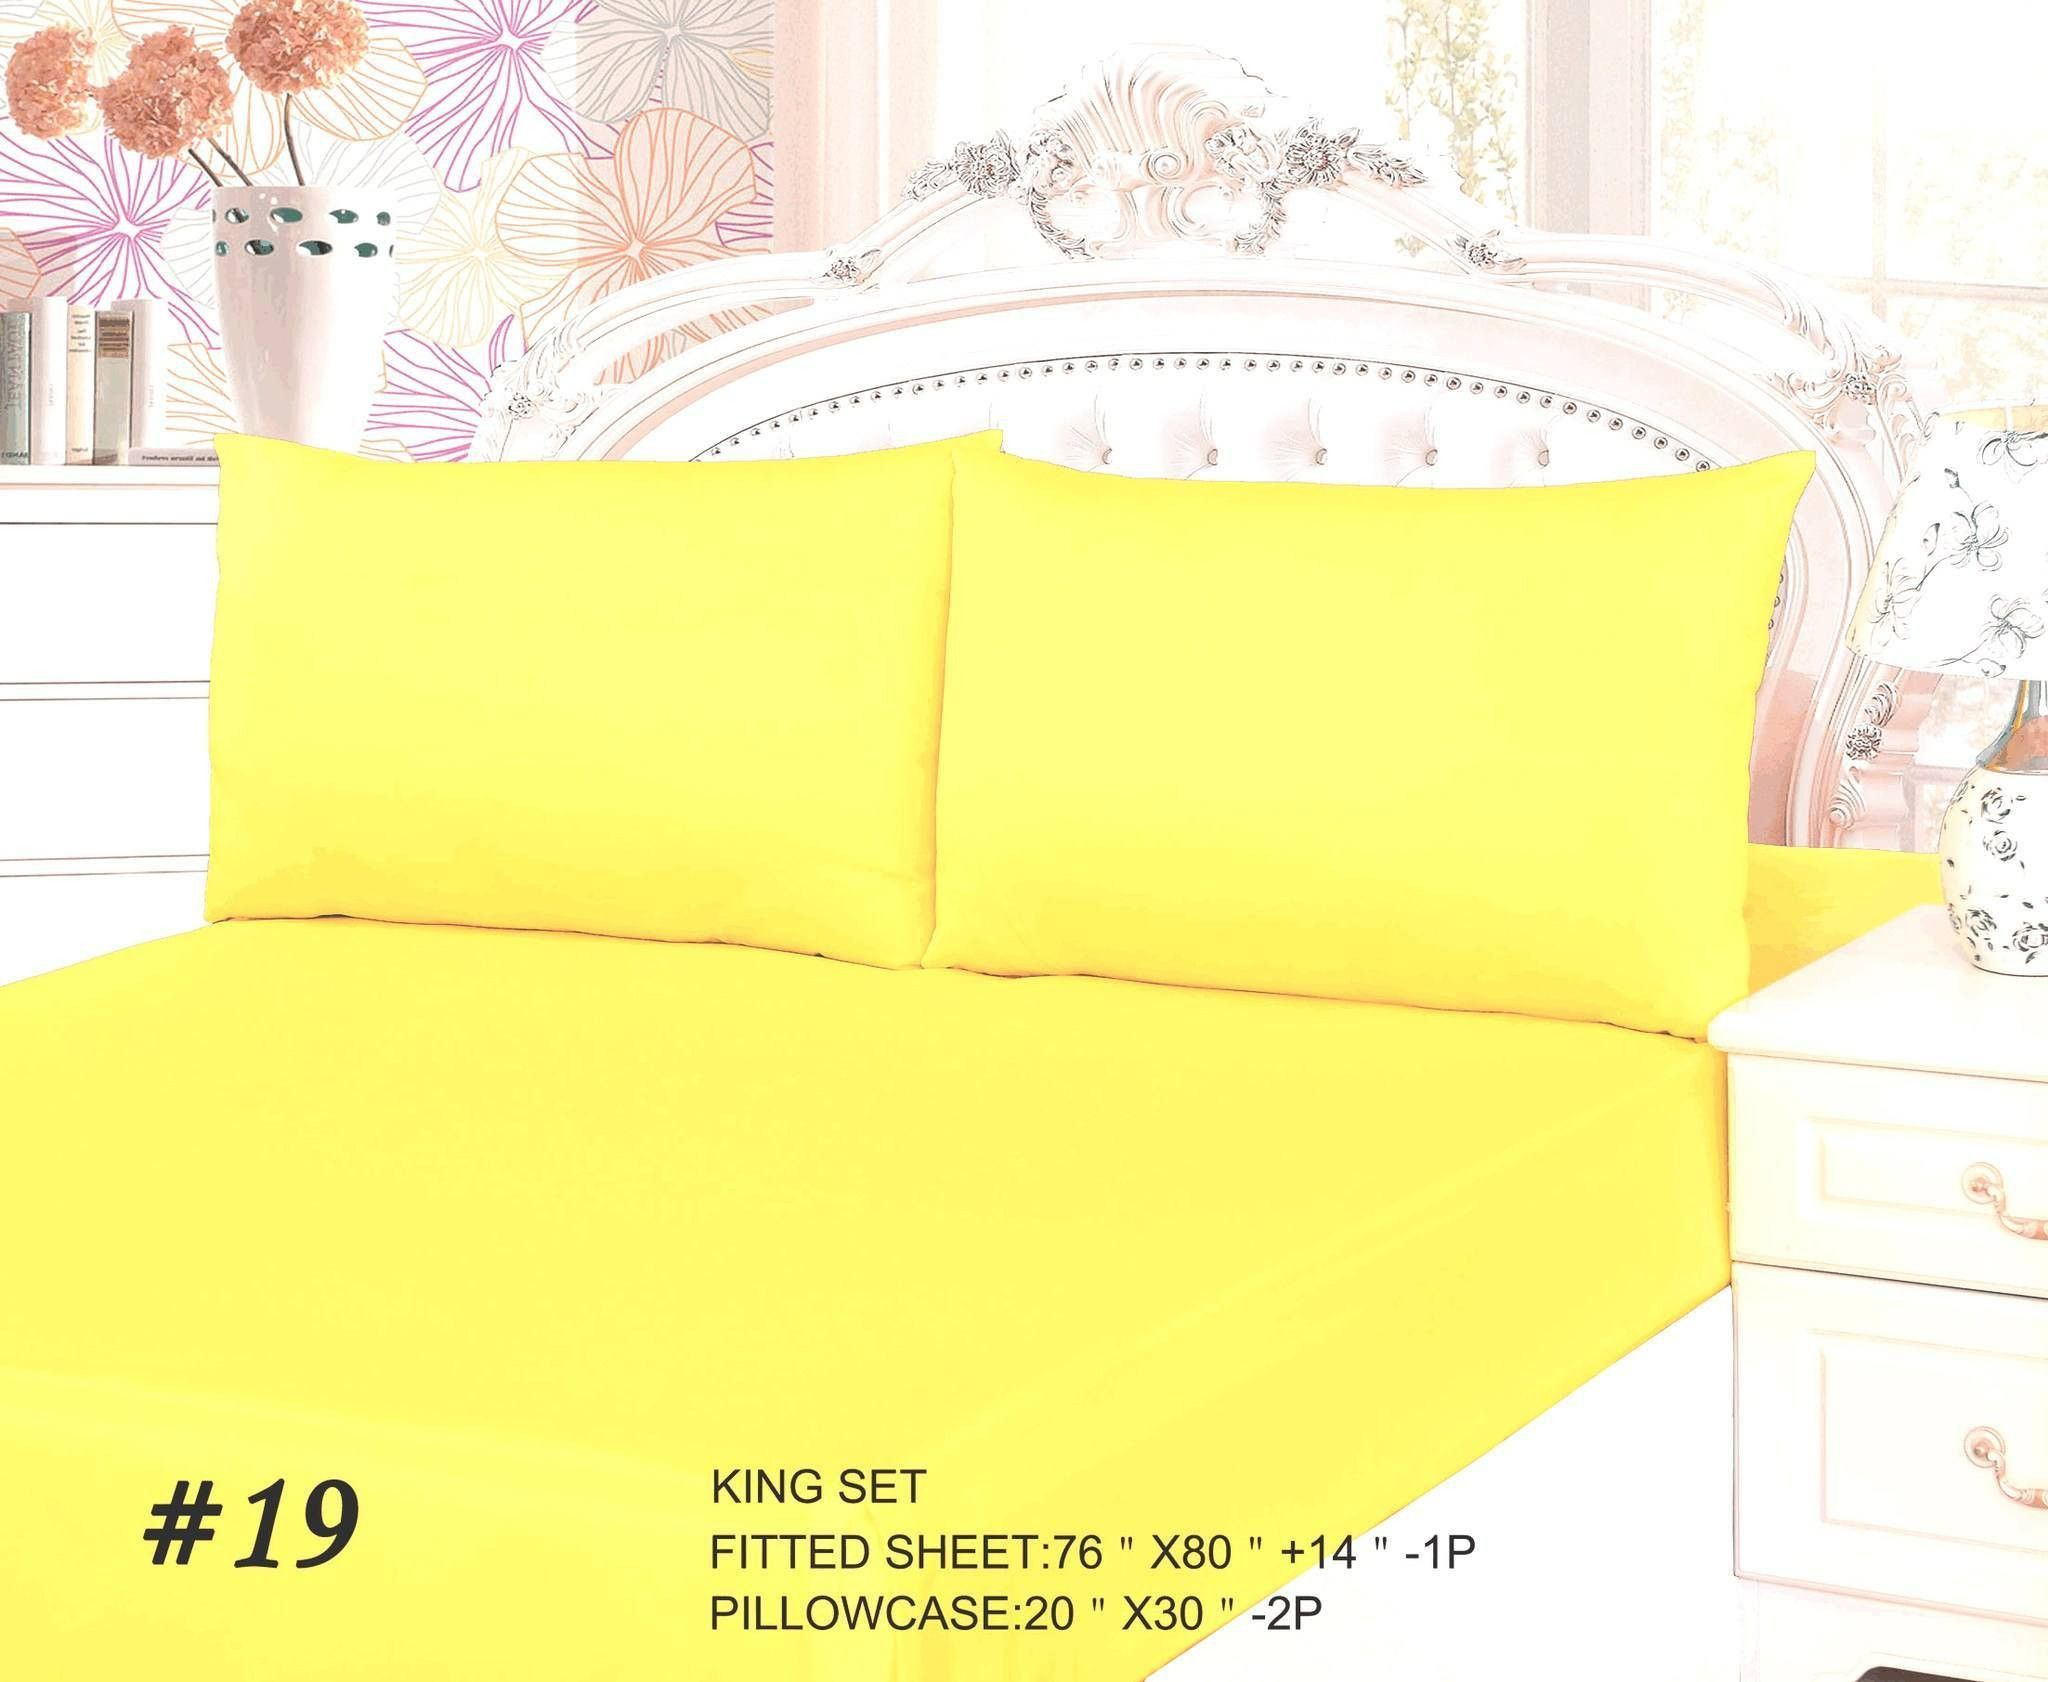 Pcs peter pan bedding set duvet cover fitted sheet pillow case worl - Tache 2 3 Piece Banana Yellow Bed Sheet Set Fitted Sheet